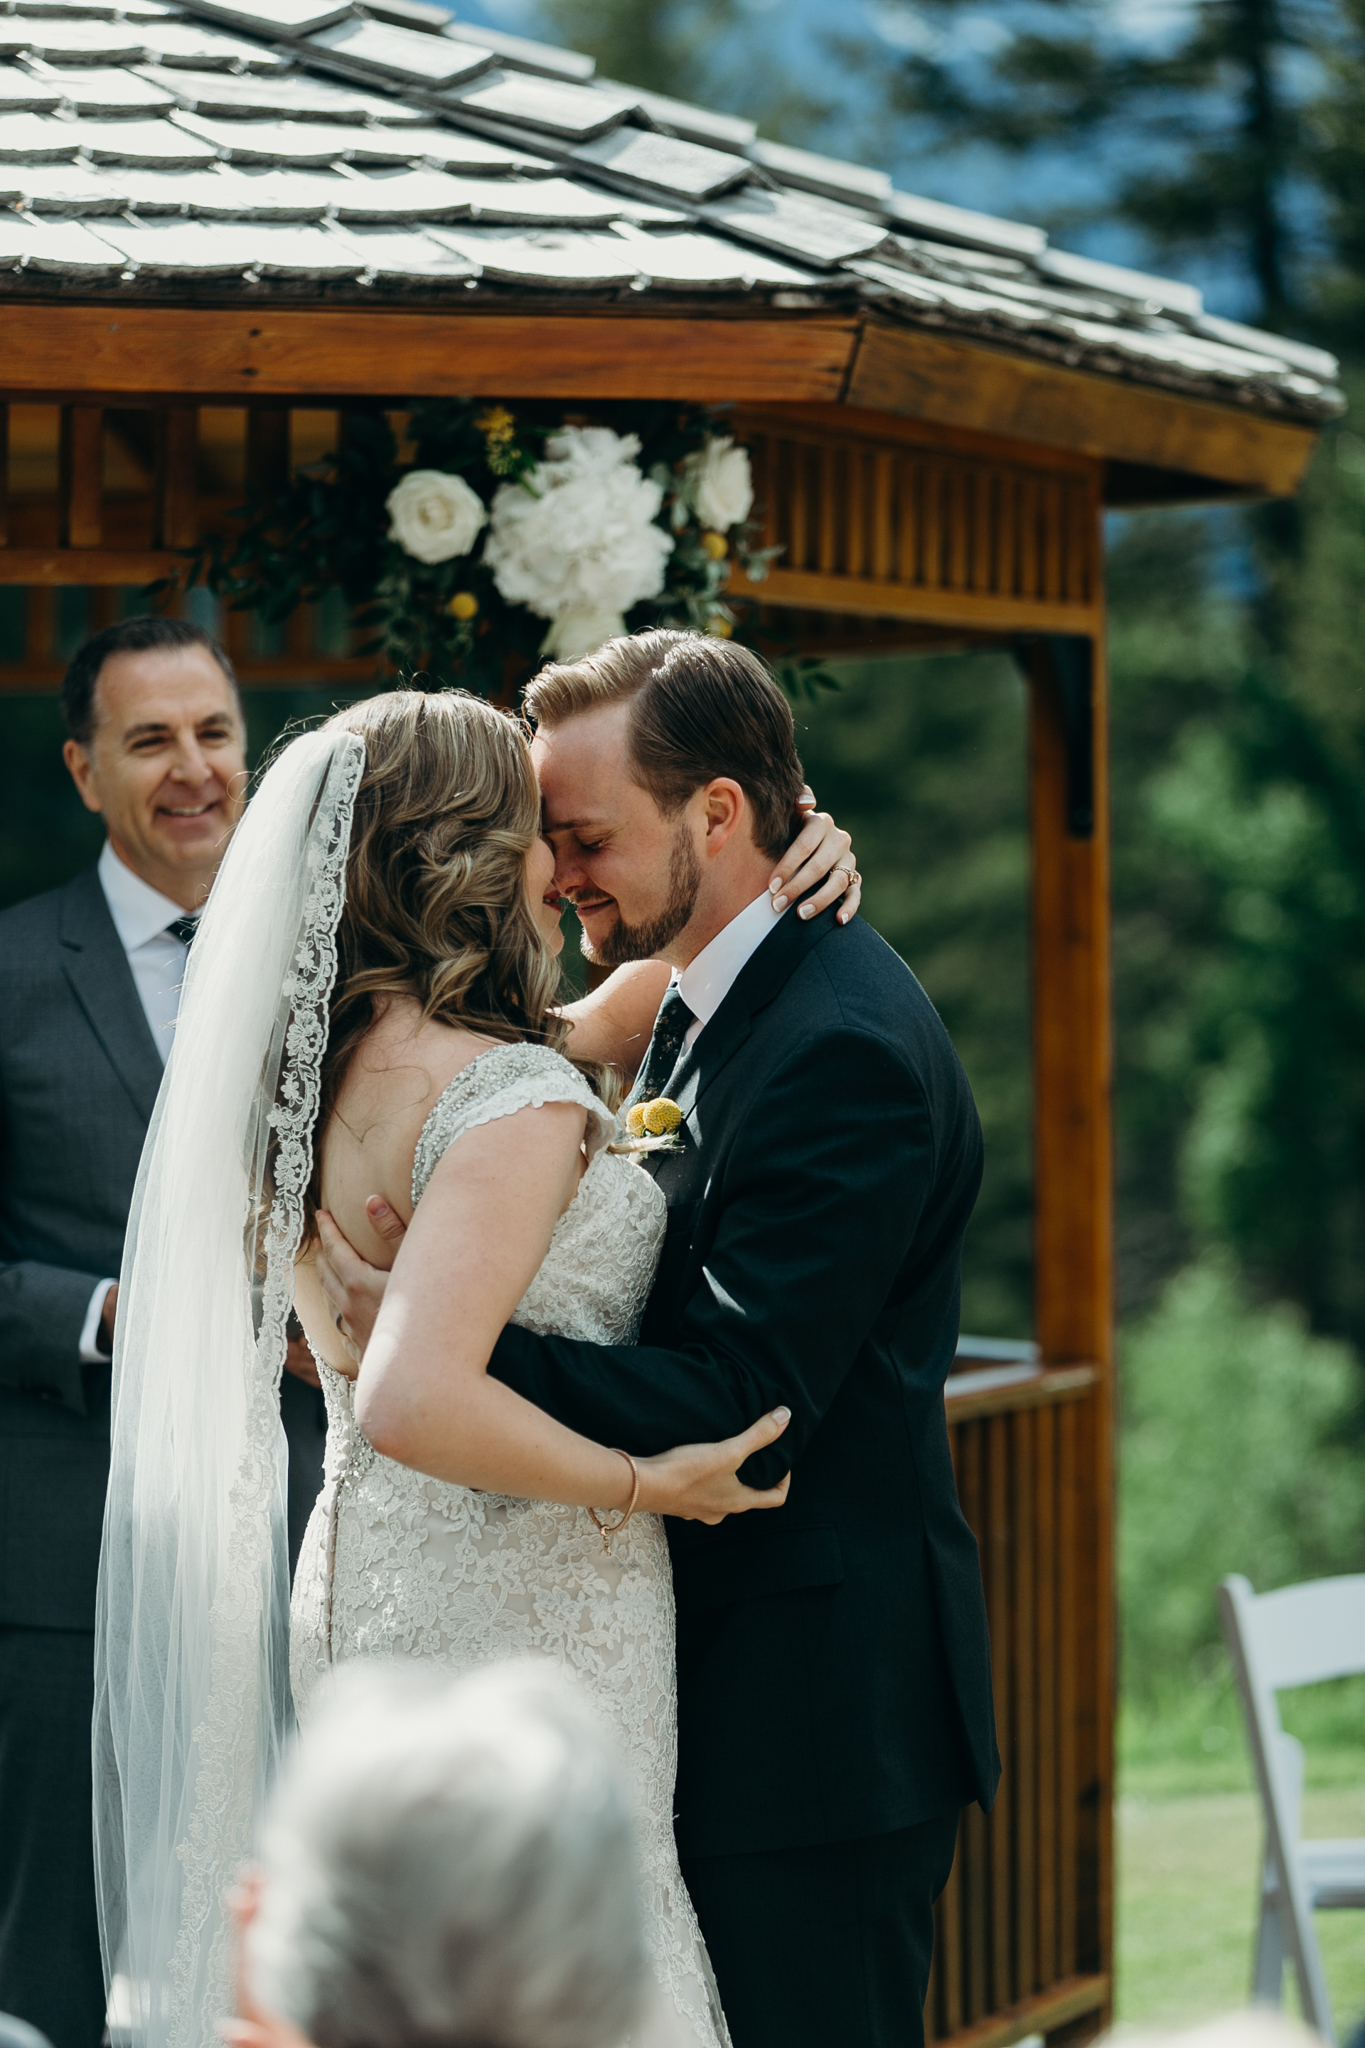 Bride and groom kiss at Silvertip Resort in front of gazebo and mountains